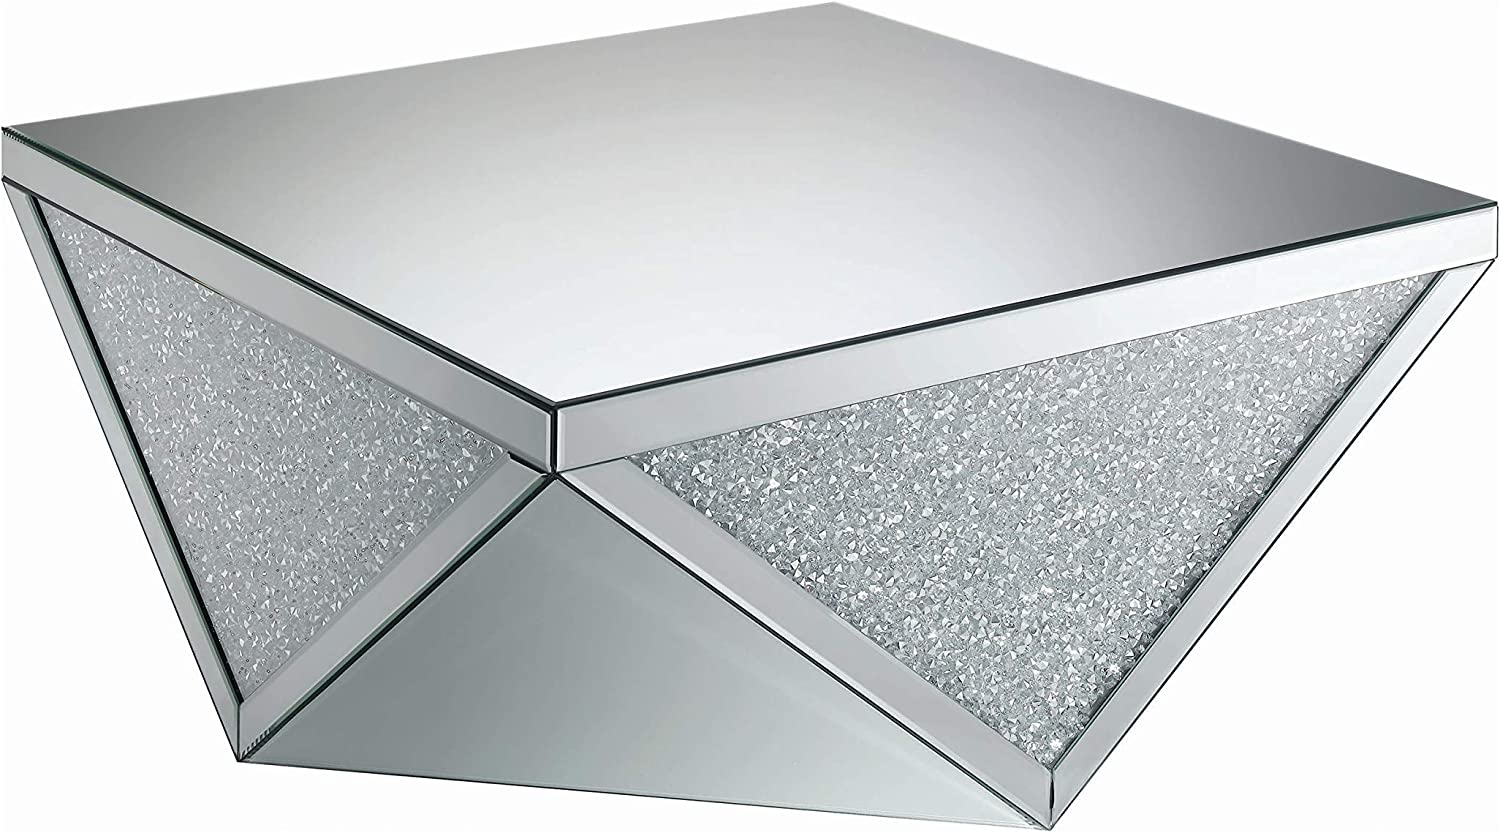 Coaster Home Furnishings Square Triangle Detailing Silver and Clear Mirror Coffee Table, 38.5